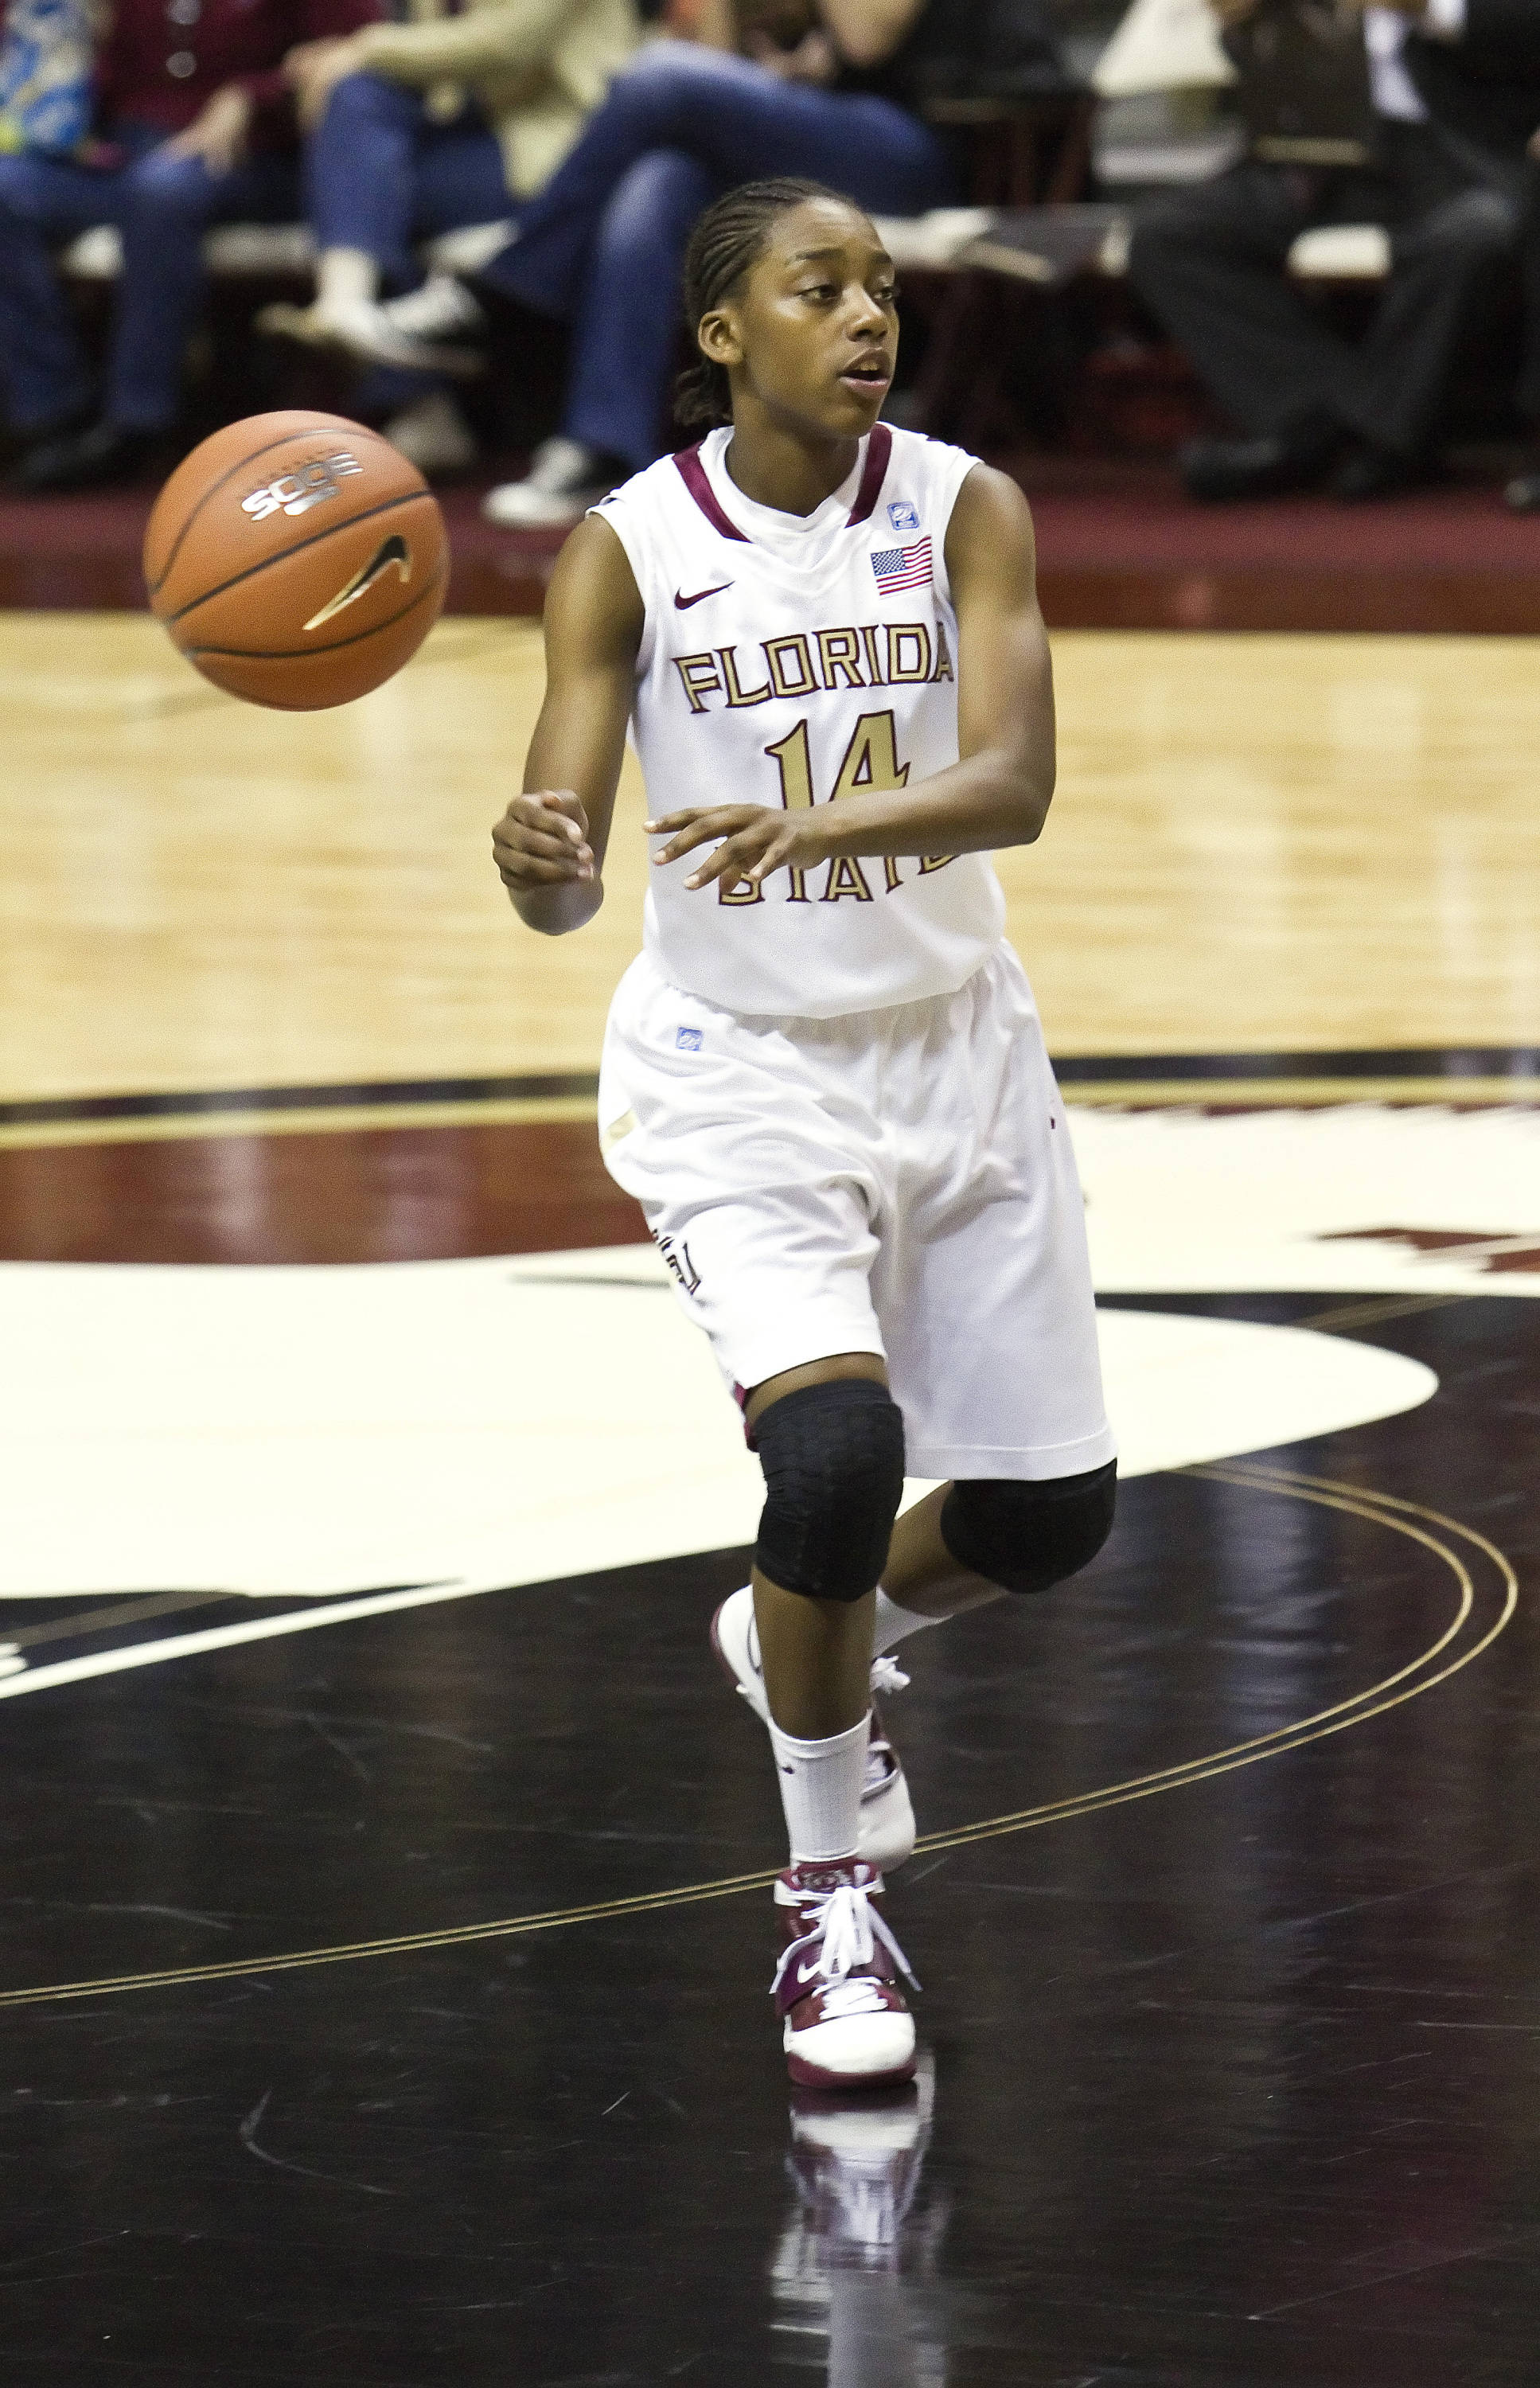 FSU vs Jacksonville State - 12/12/10 - Tay'ler Mingo (14)#$%^Photo by Steve Musco